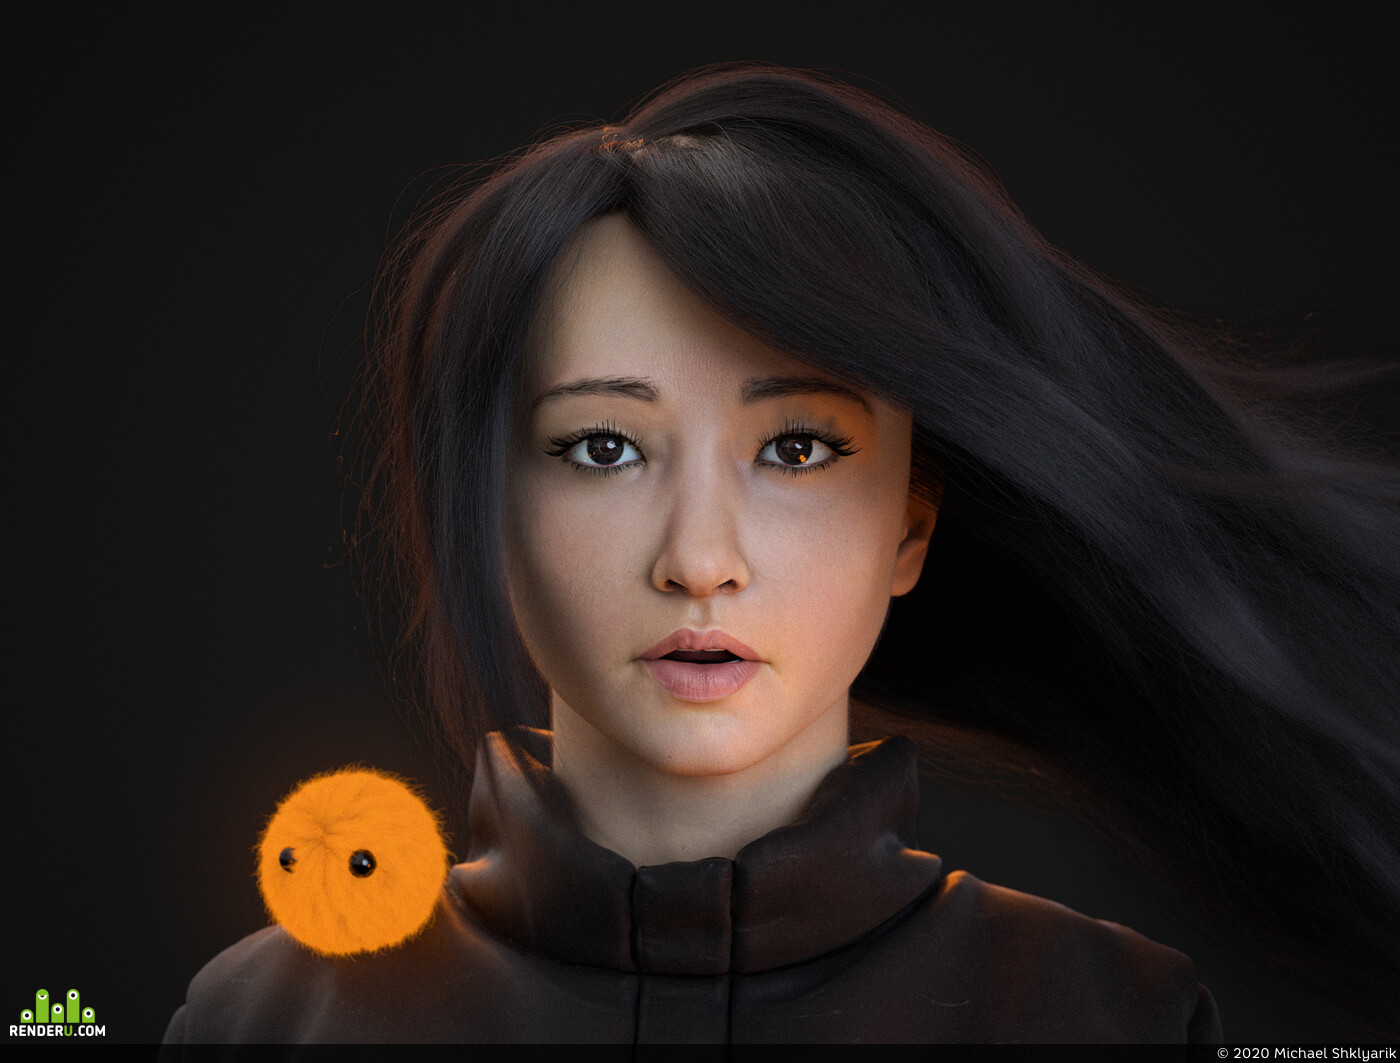 Character, 3d, realism